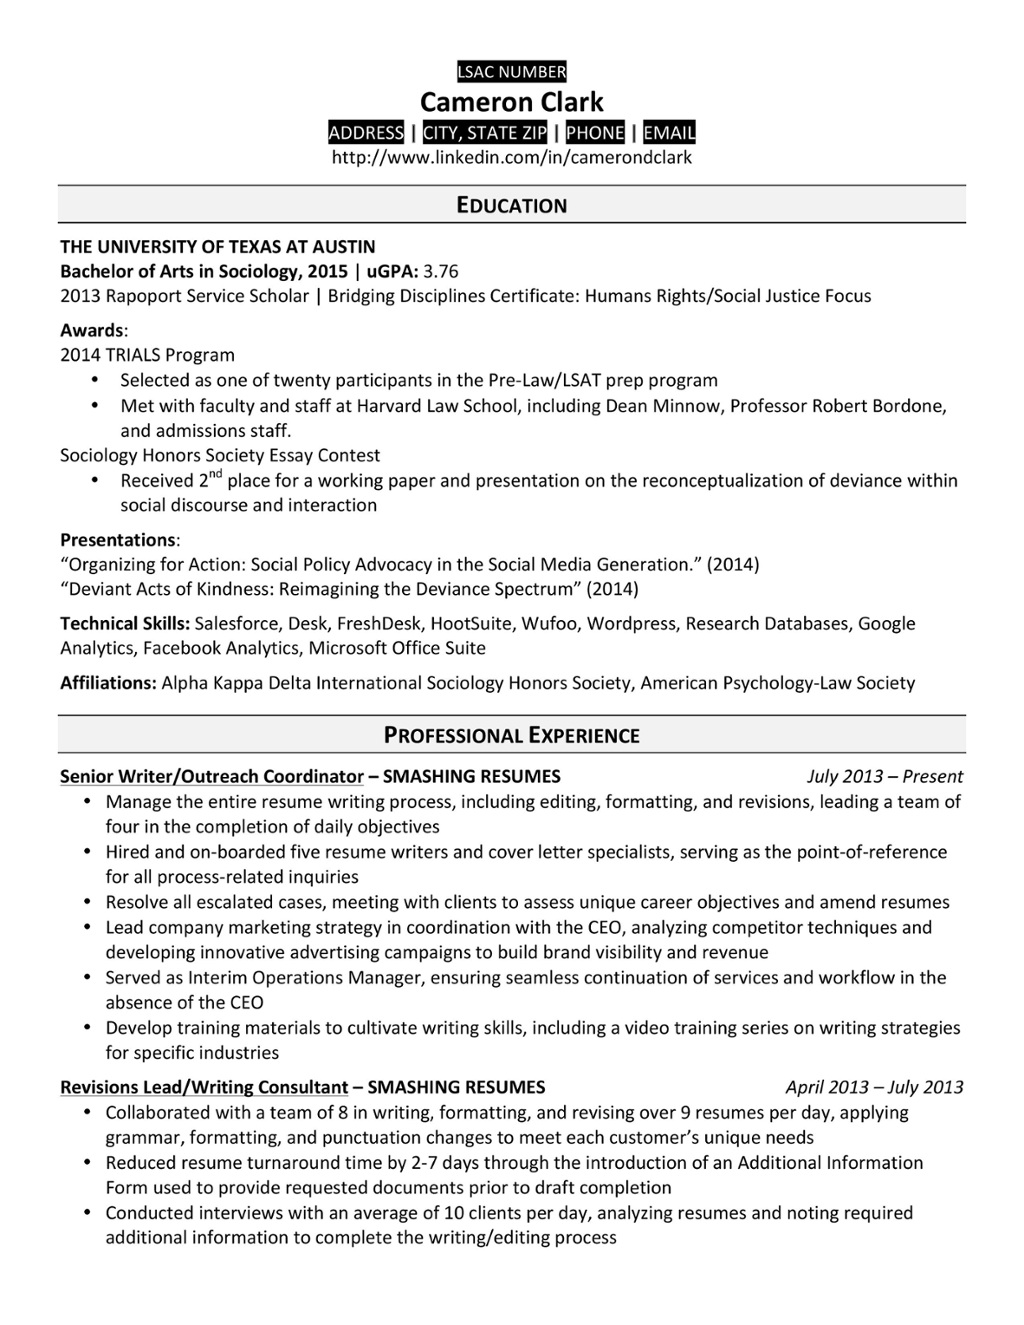 a law school resume that made the cut